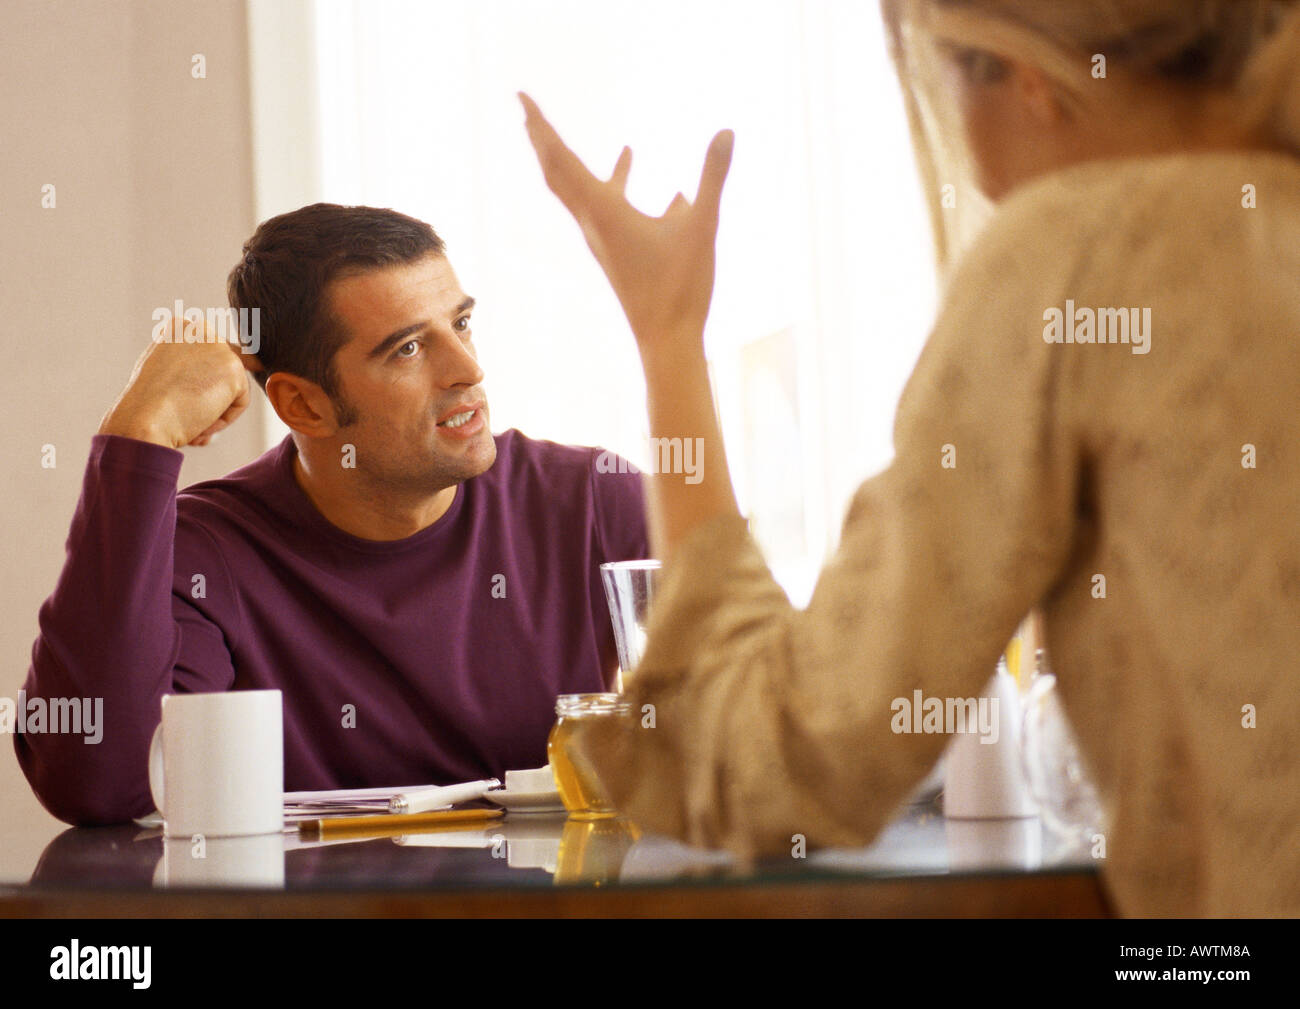 Woman sitting across from man at table, rear view. - Stock Image